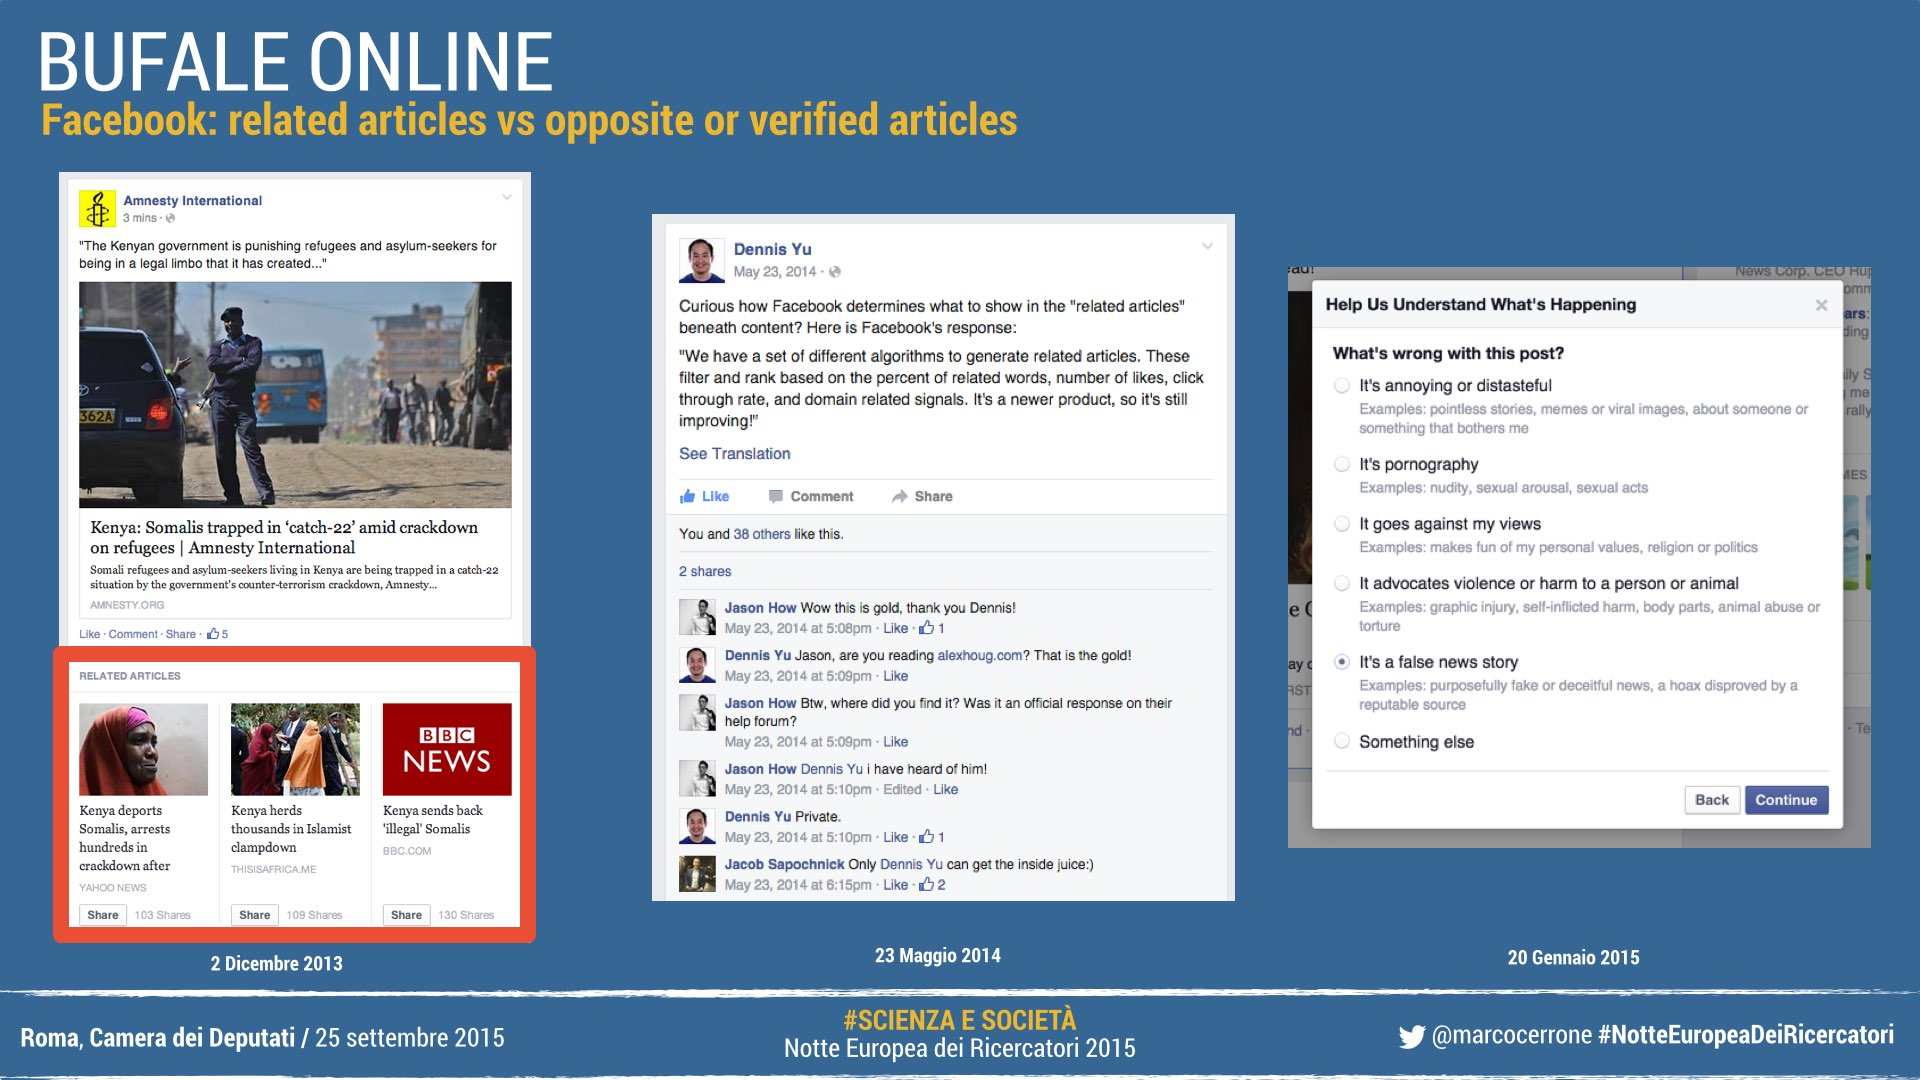 Facebook: related articles vs opposite or verified articles